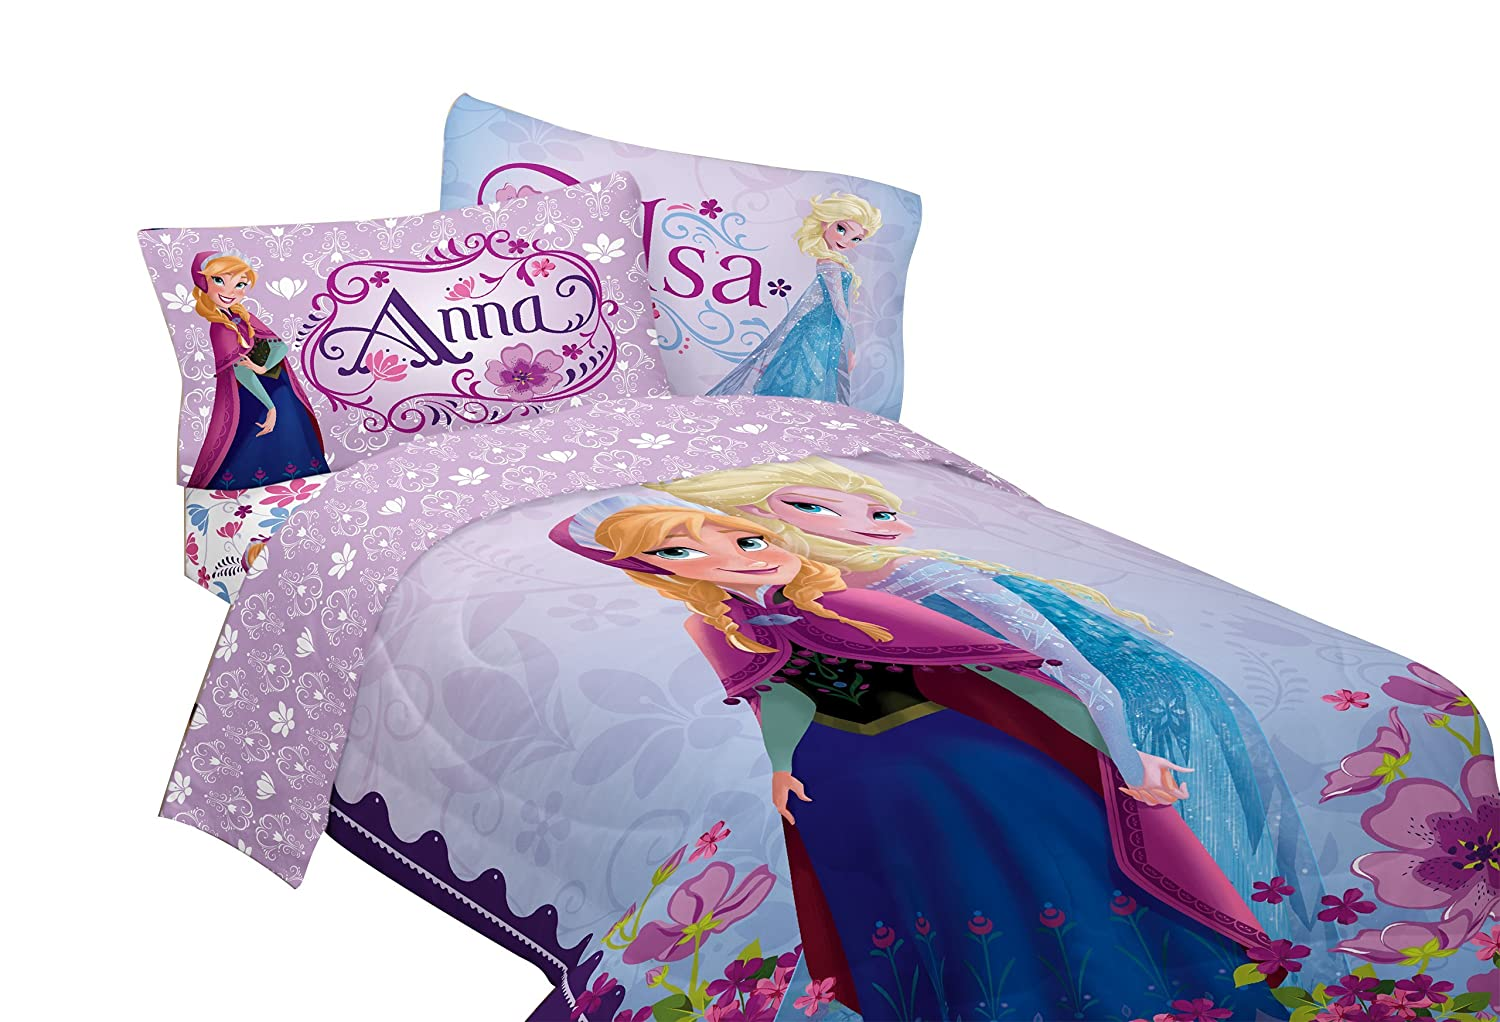 Disney Frozen Celebrate Love 76-Inch by 86-Inch Microfiber Reversible Comforter, Full